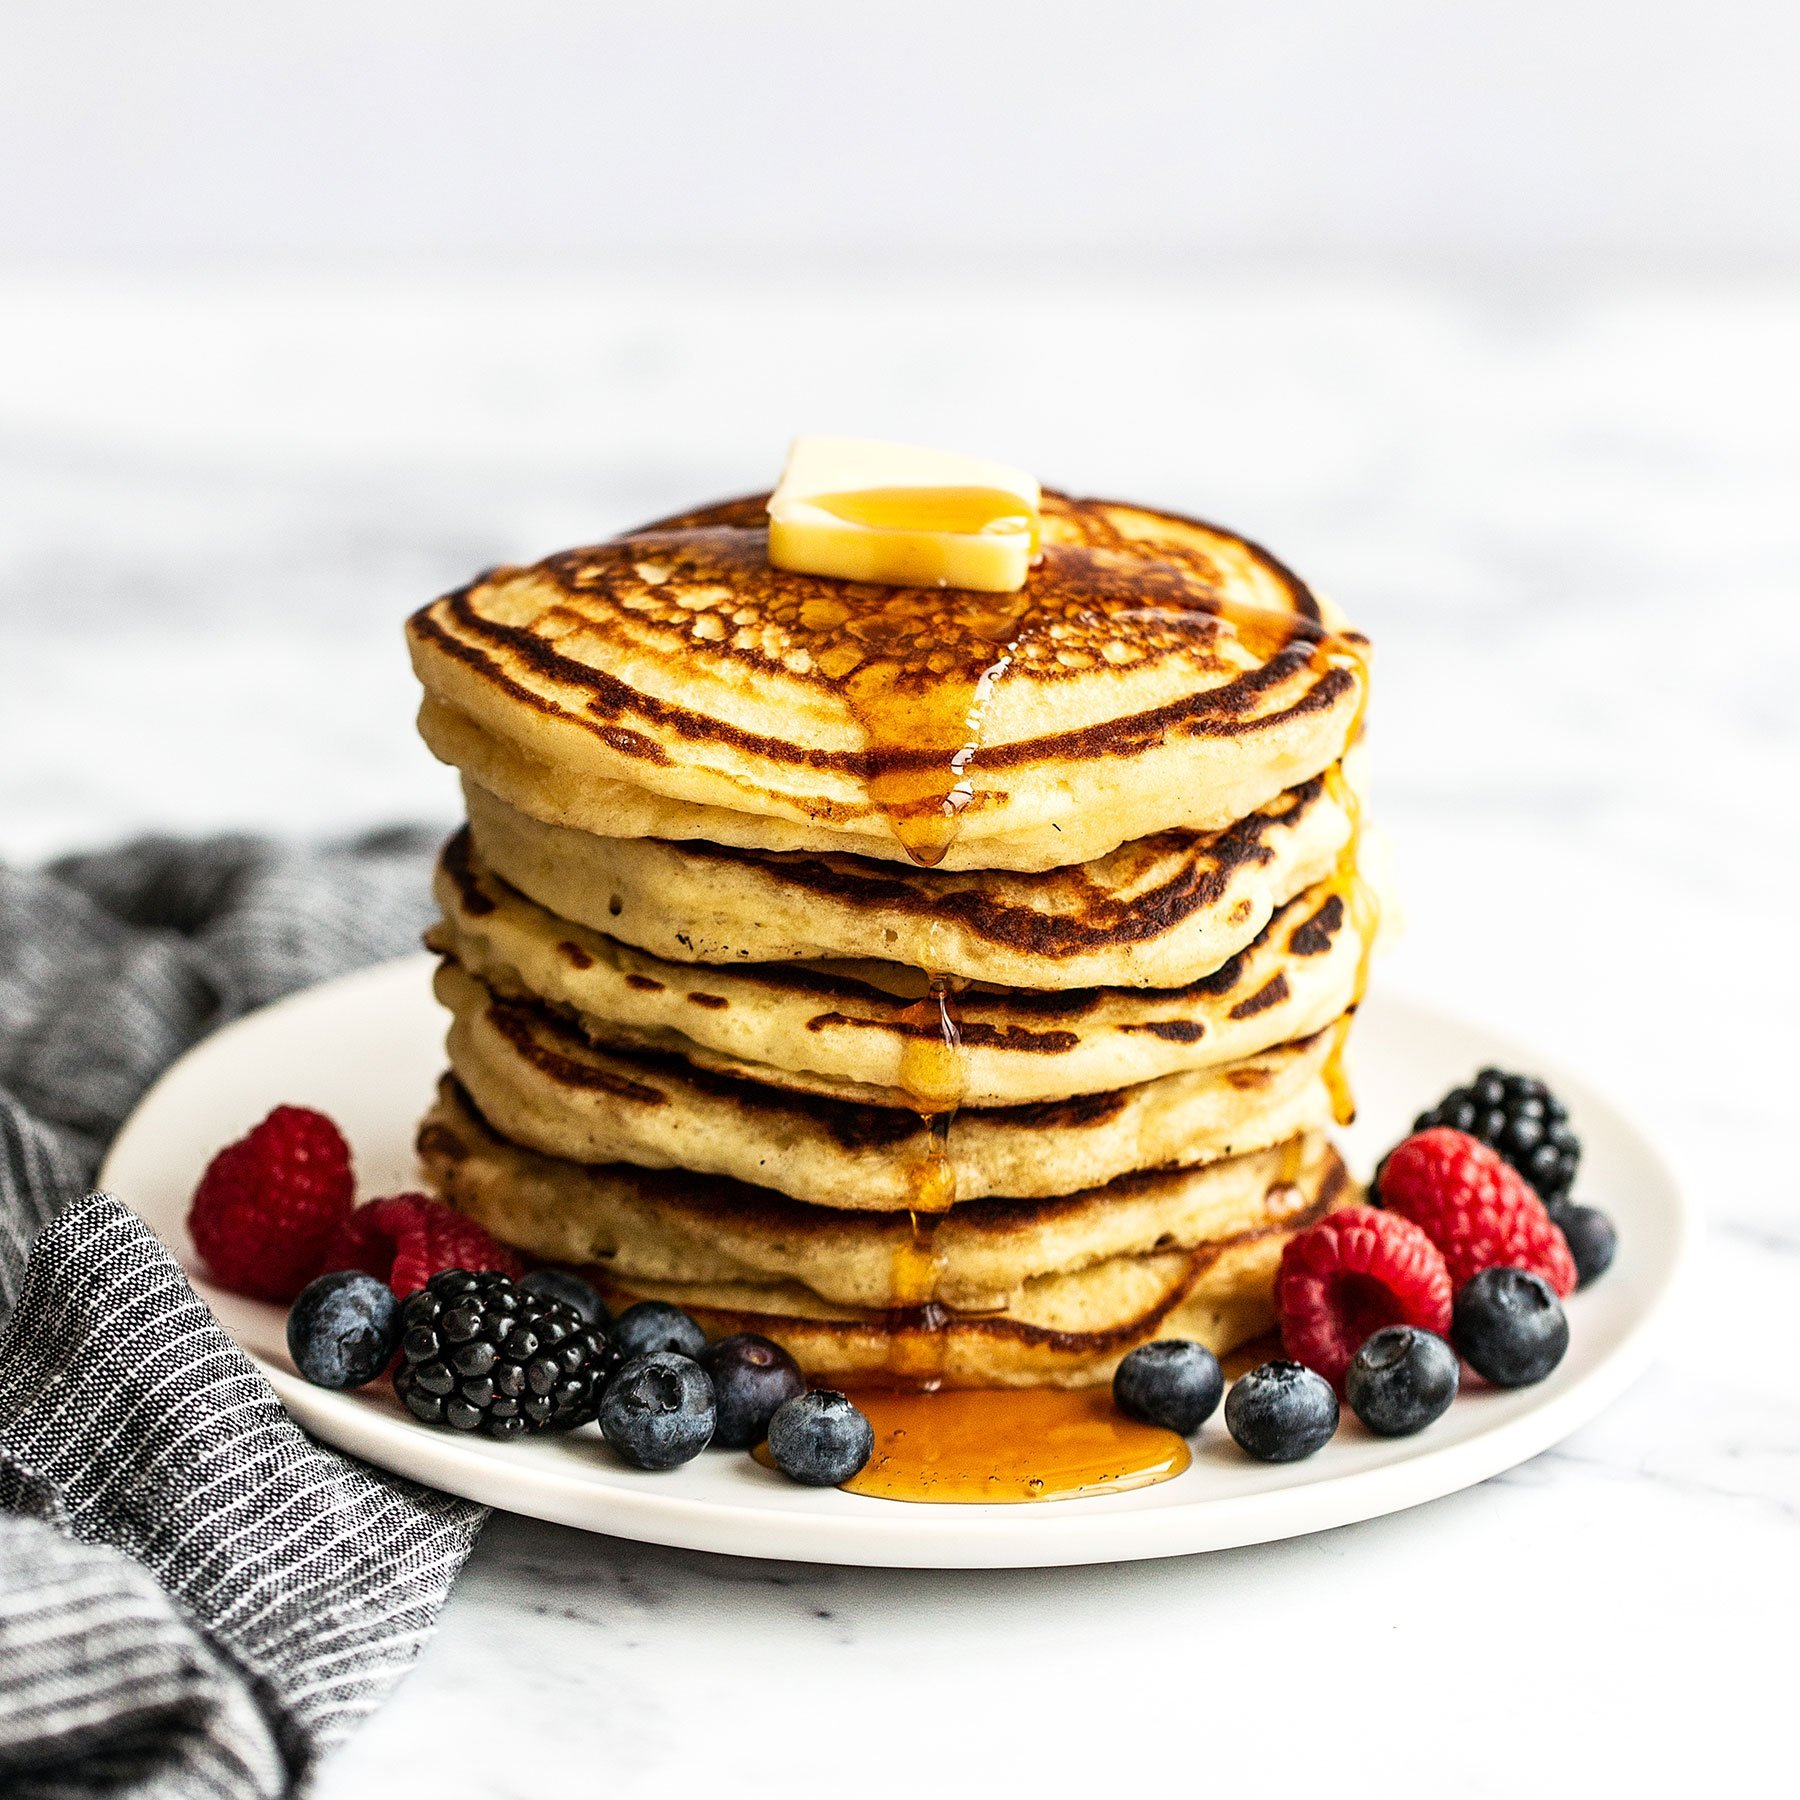 Tall stack of pancakes on a plate with syrup, berries, and a pat of butter